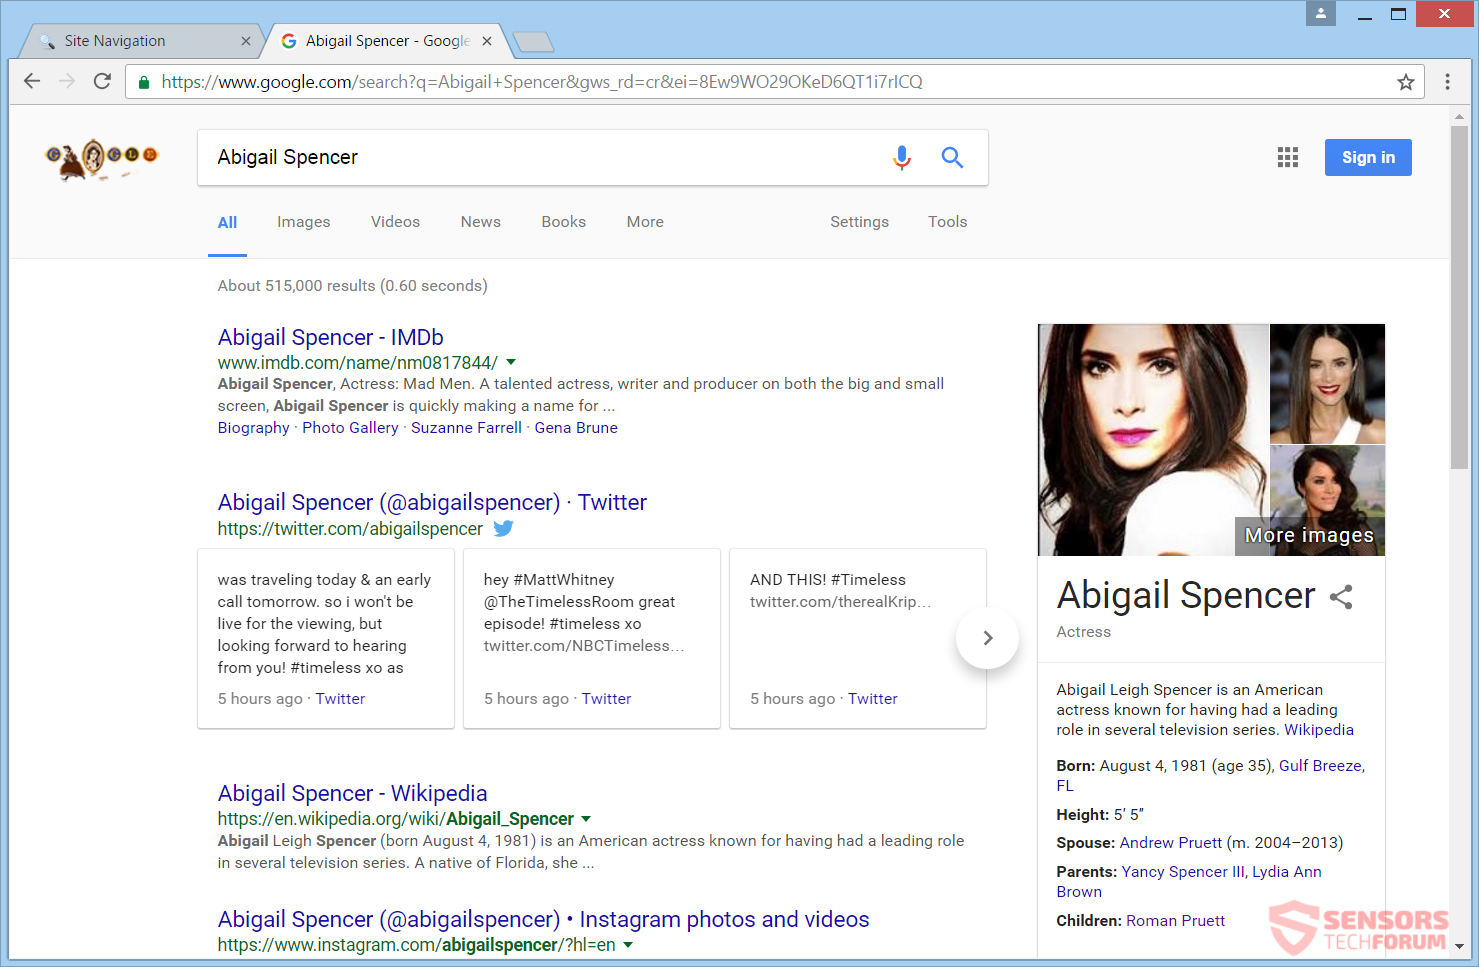 stf-tgmgo-com-search-browser-hijacker-redirect-abigail-spencer-search-results